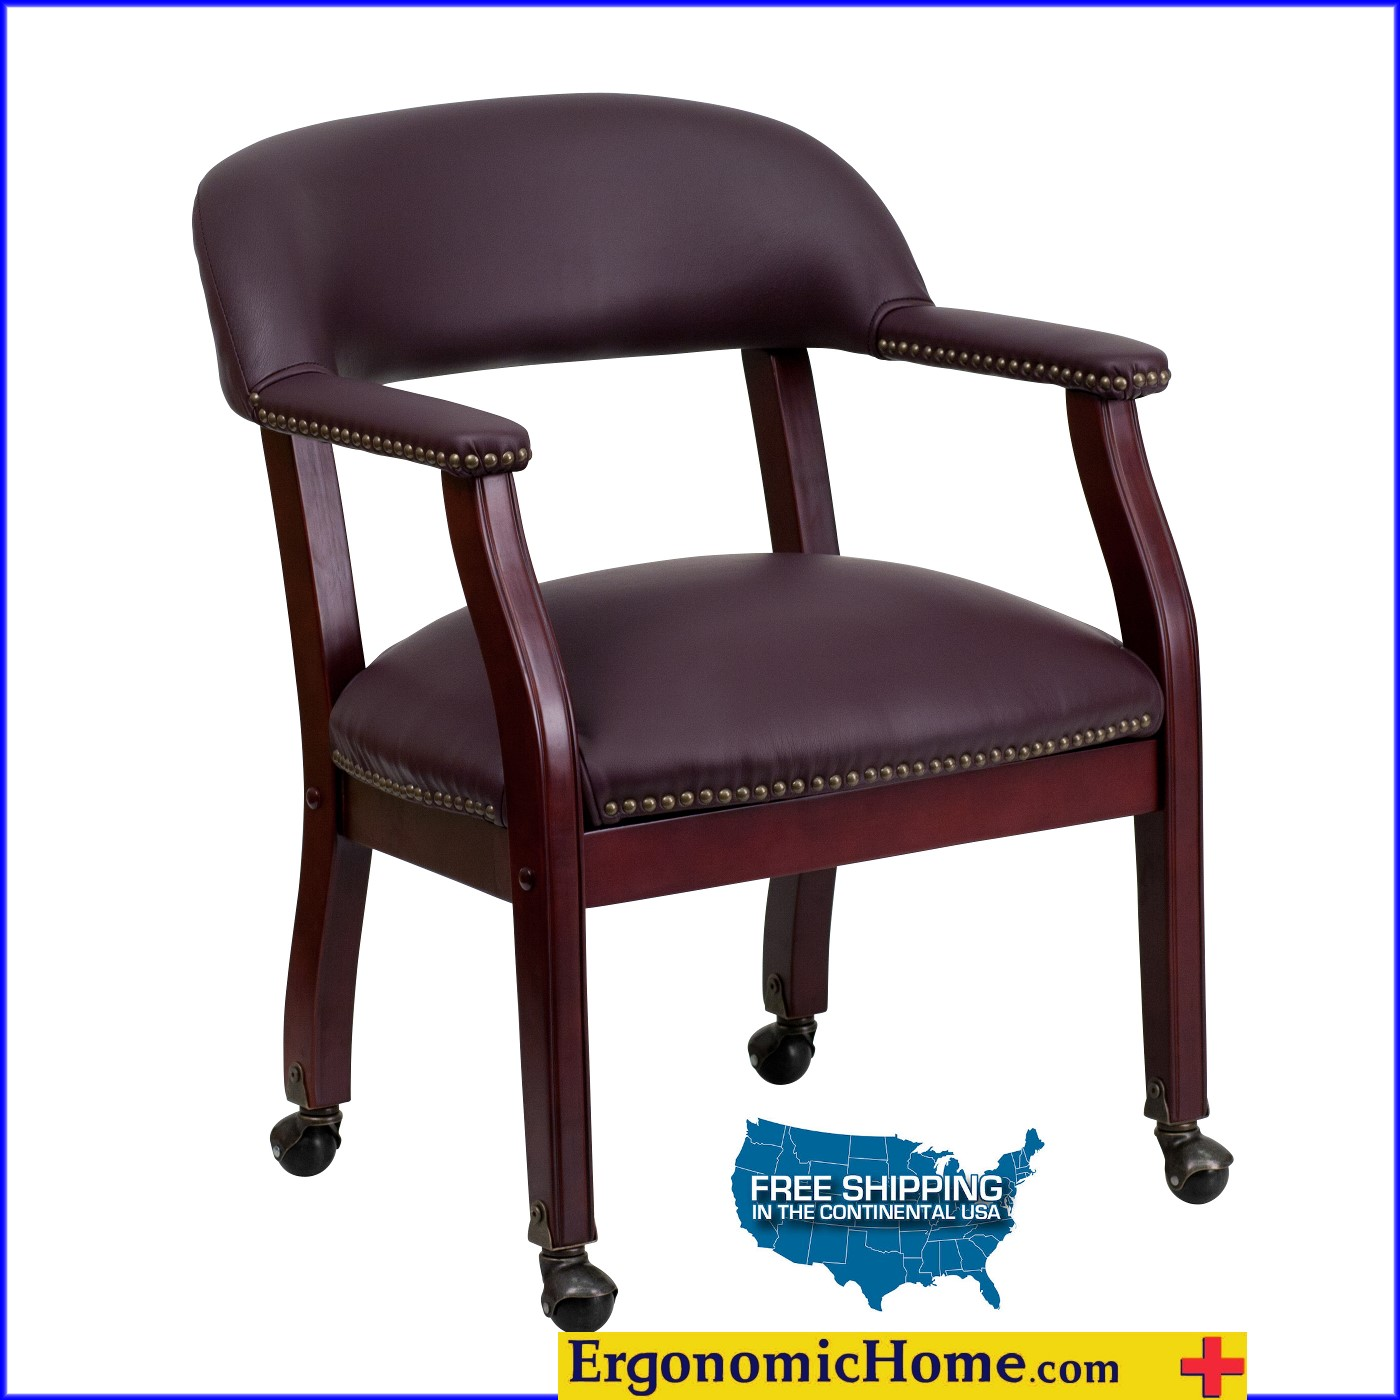 <font color=#c60>Save 50% w/Free Shipping!</font> Burgundy Top Grain Leather Conference Chair with Casters B-Z100-LF19-LEA-GG <font color=#c60>Read More ... </font>